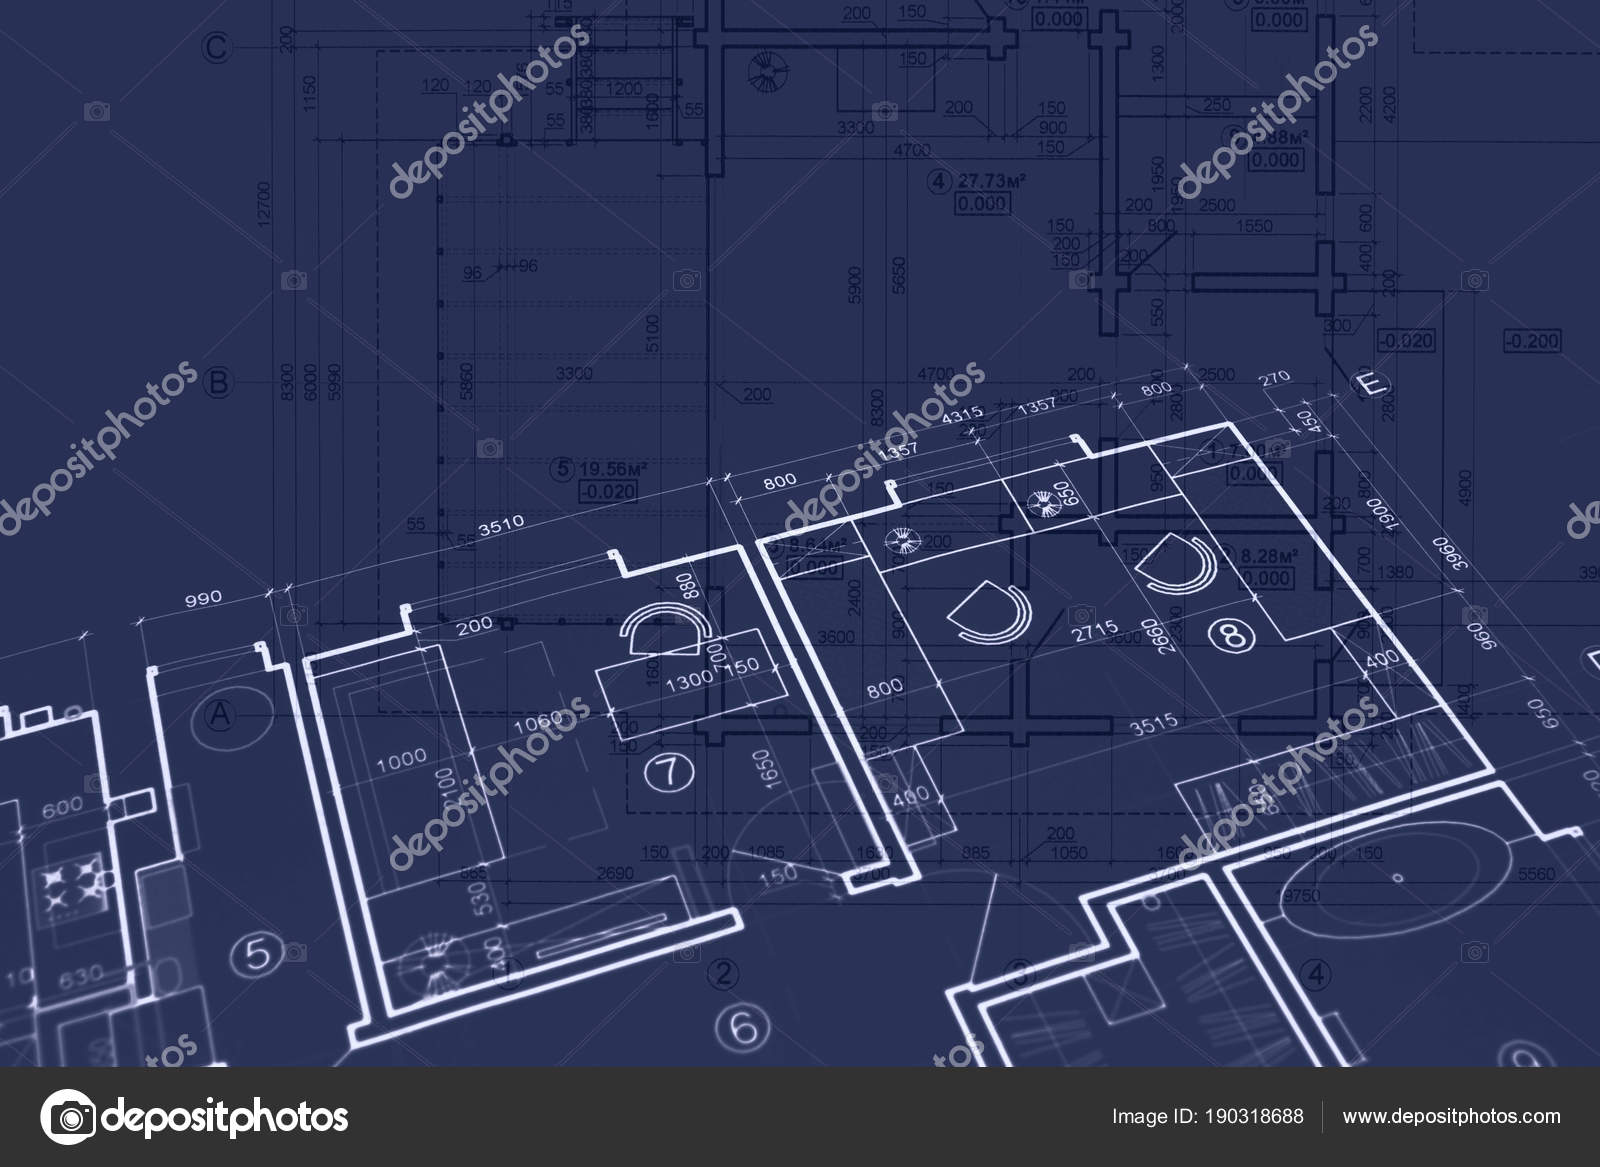 Architects workplace background blueprints civil building architects workplace background blueprints civil building engineering plan closeup stock photo malvernweather Image collections